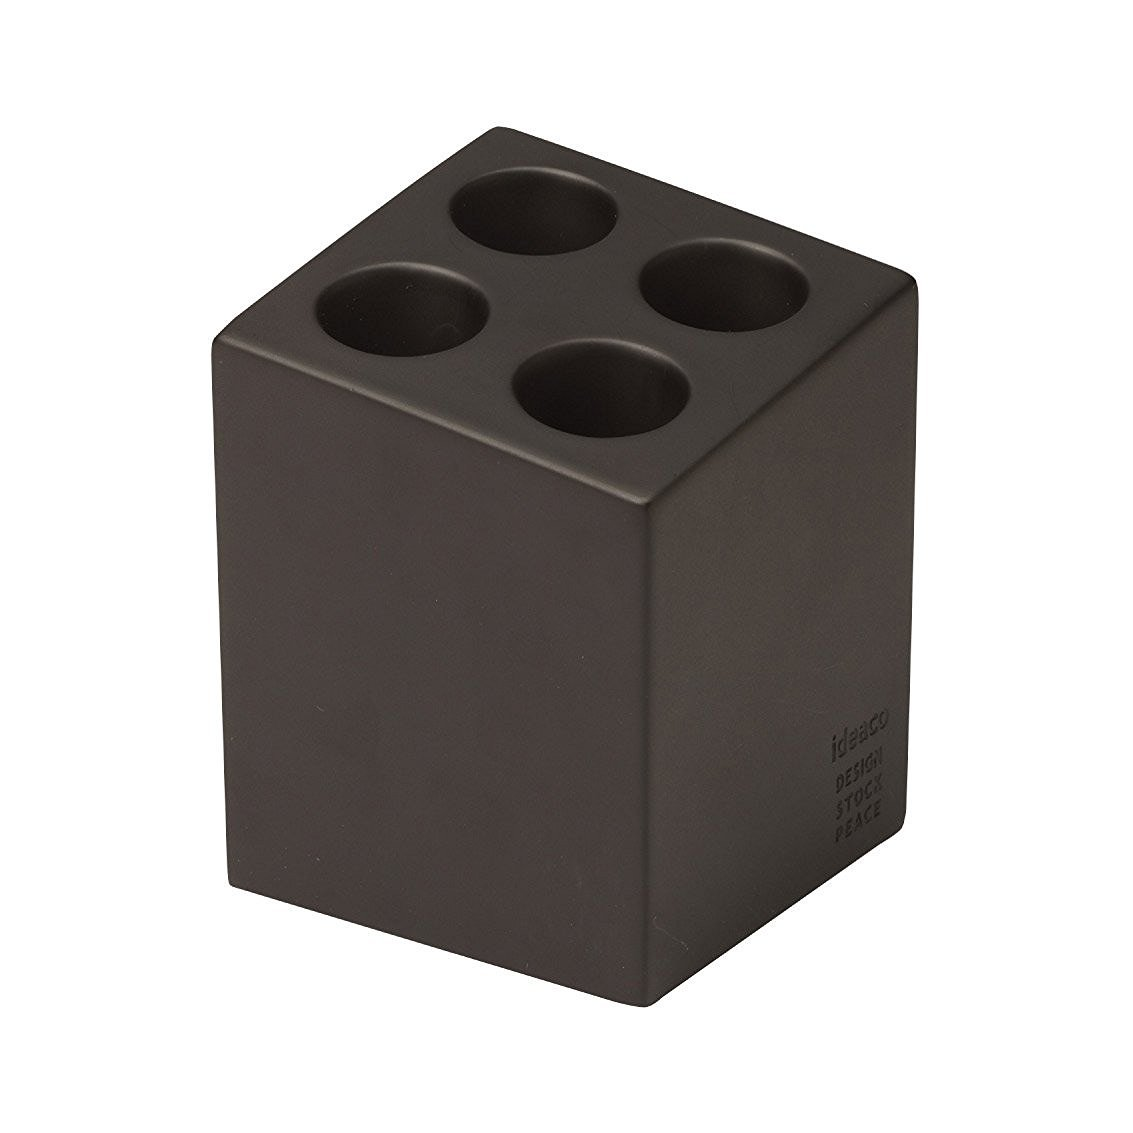 Ideaco Japan Compact Minimalist Design Umbrella Stand Mini Cube 4 Slot MATTE BROWN by Ideaco